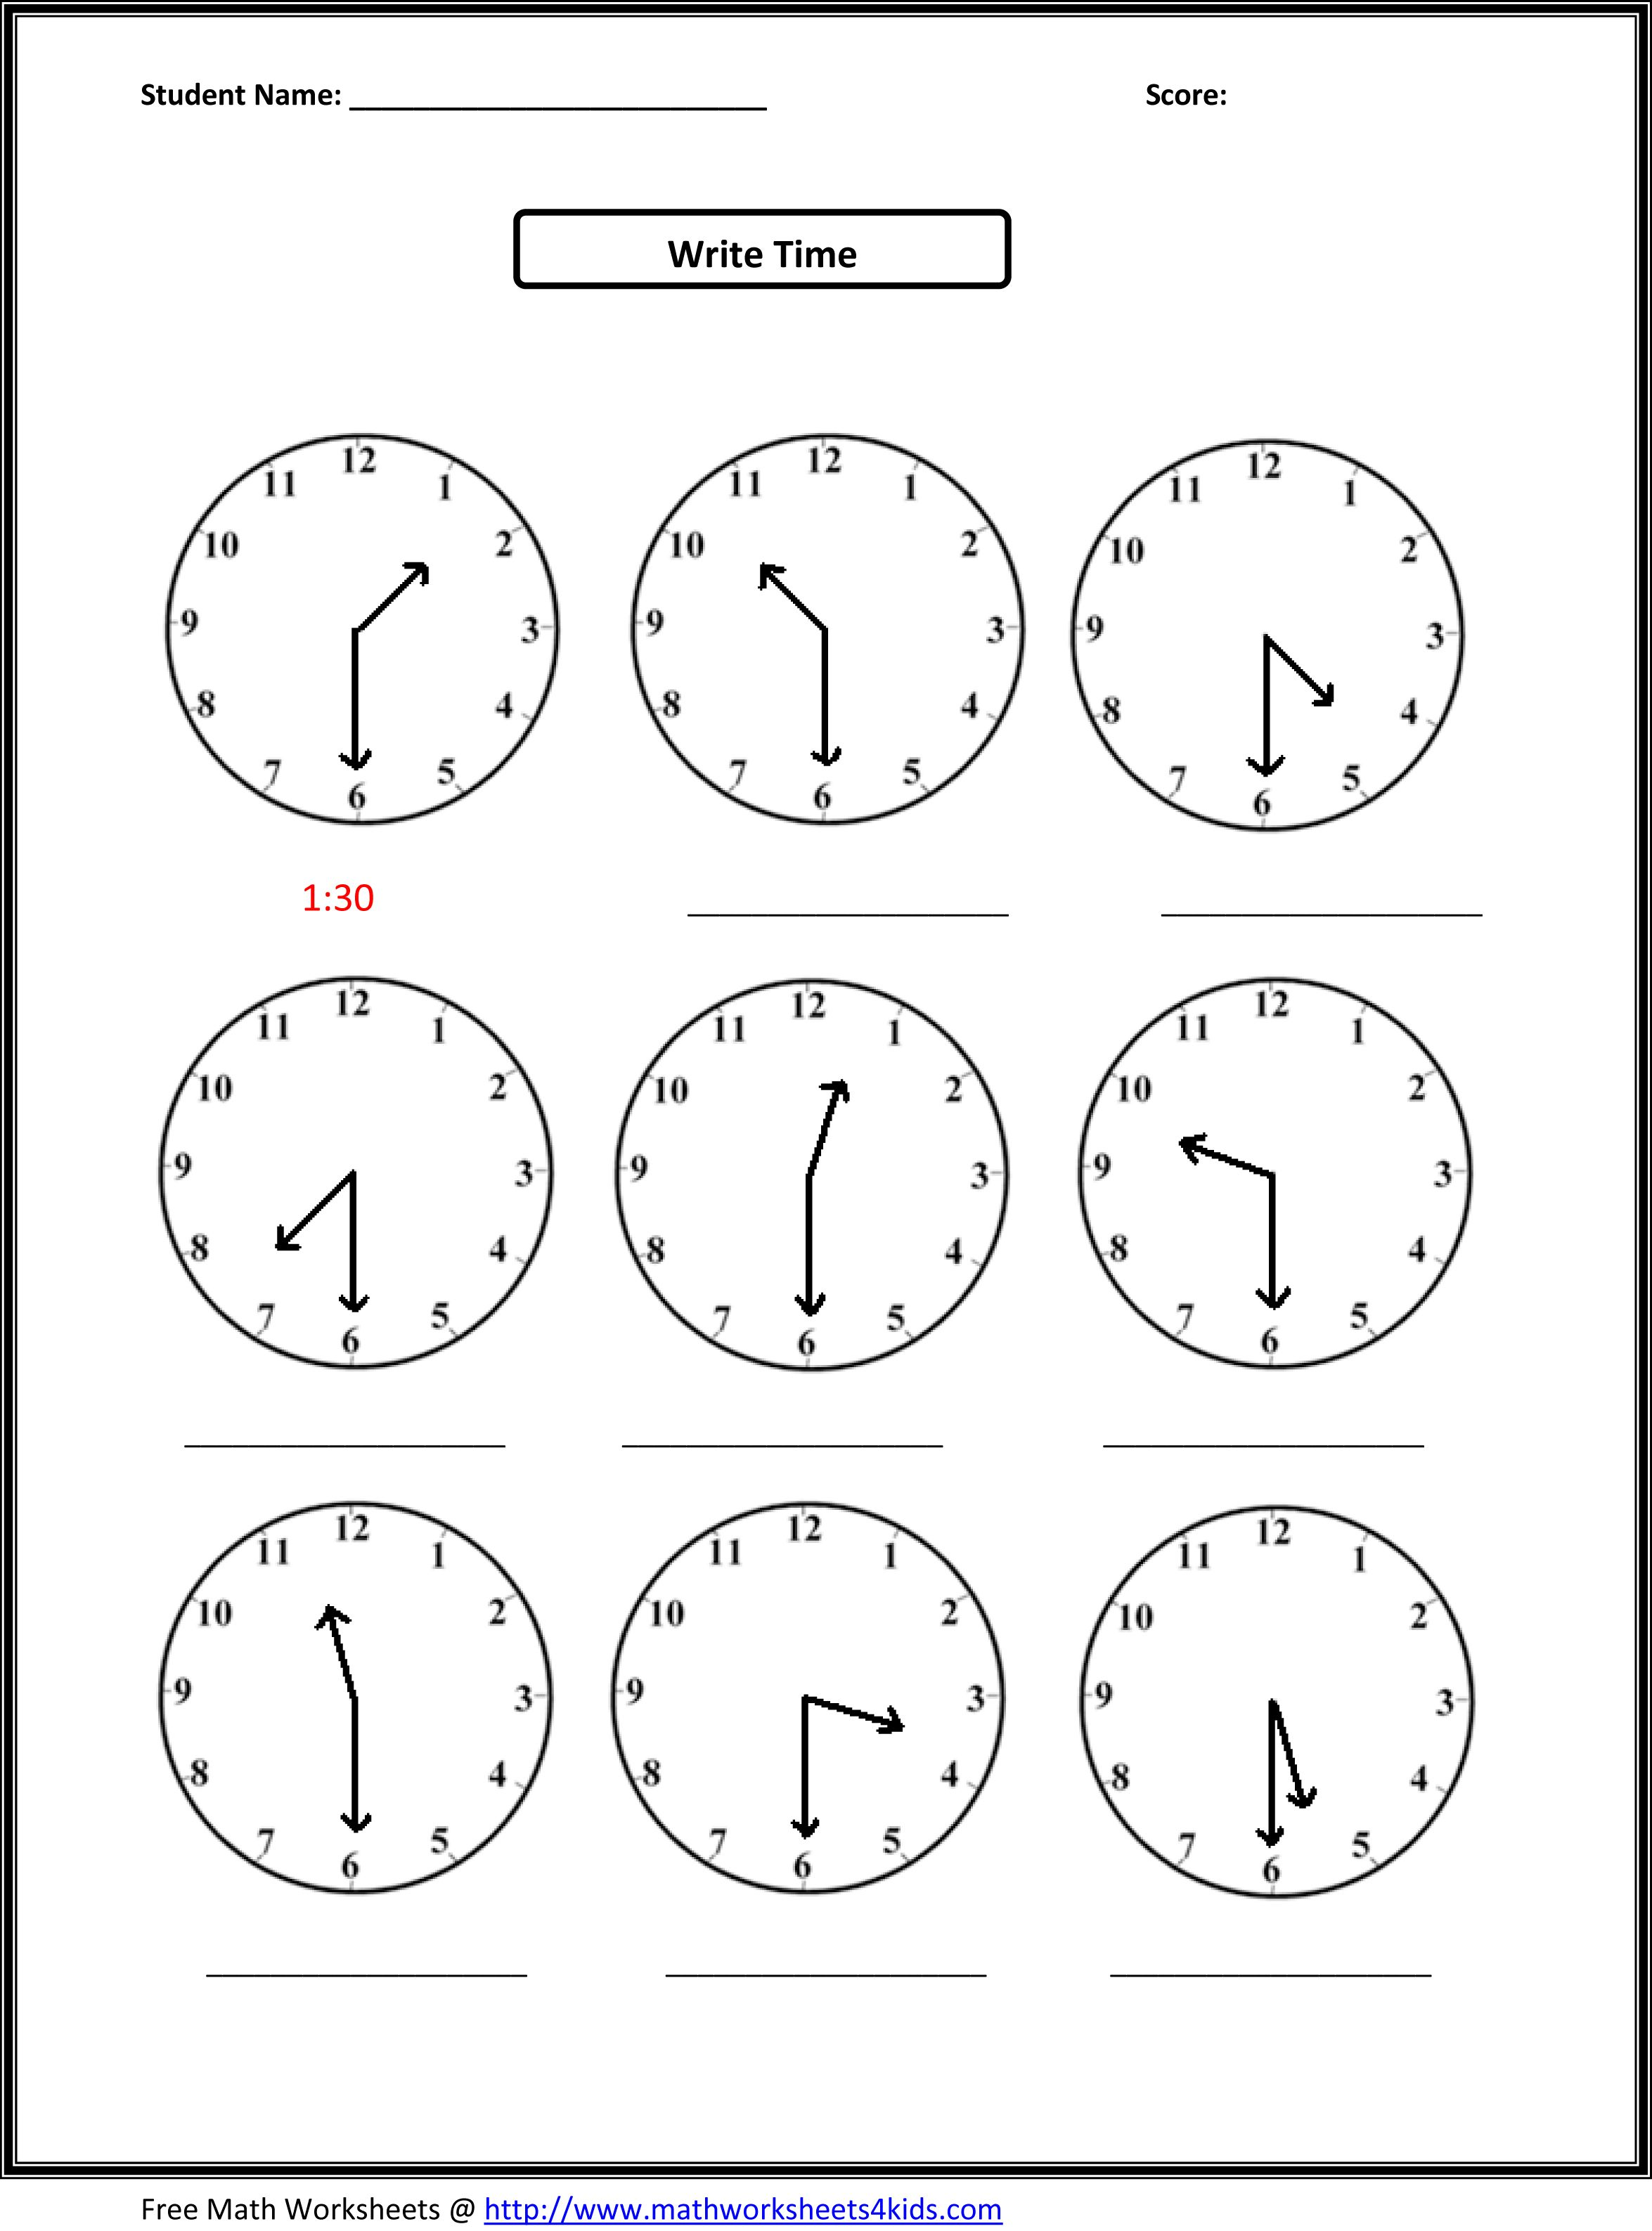 Proatmealus  Splendid Worksheet On Time For Grade   Reocurent With Hot Free Printable Telling Time Worksheets Nd Grade  Reocurent With Cute Context Clues Th Grade Worksheet Also Free Printable Th Grade Science Worksheets In Addition Th Grade Math Worksheets Decimals And Columbus Worksheet As Well As Time Worksheet Nd Grade Additionally Human Endocrine System Worksheet From Reocurentcom With Proatmealus  Hot Worksheet On Time For Grade   Reocurent With Cute Free Printable Telling Time Worksheets Nd Grade  Reocurent And Splendid Context Clues Th Grade Worksheet Also Free Printable Th Grade Science Worksheets In Addition Th Grade Math Worksheets Decimals From Reocurentcom